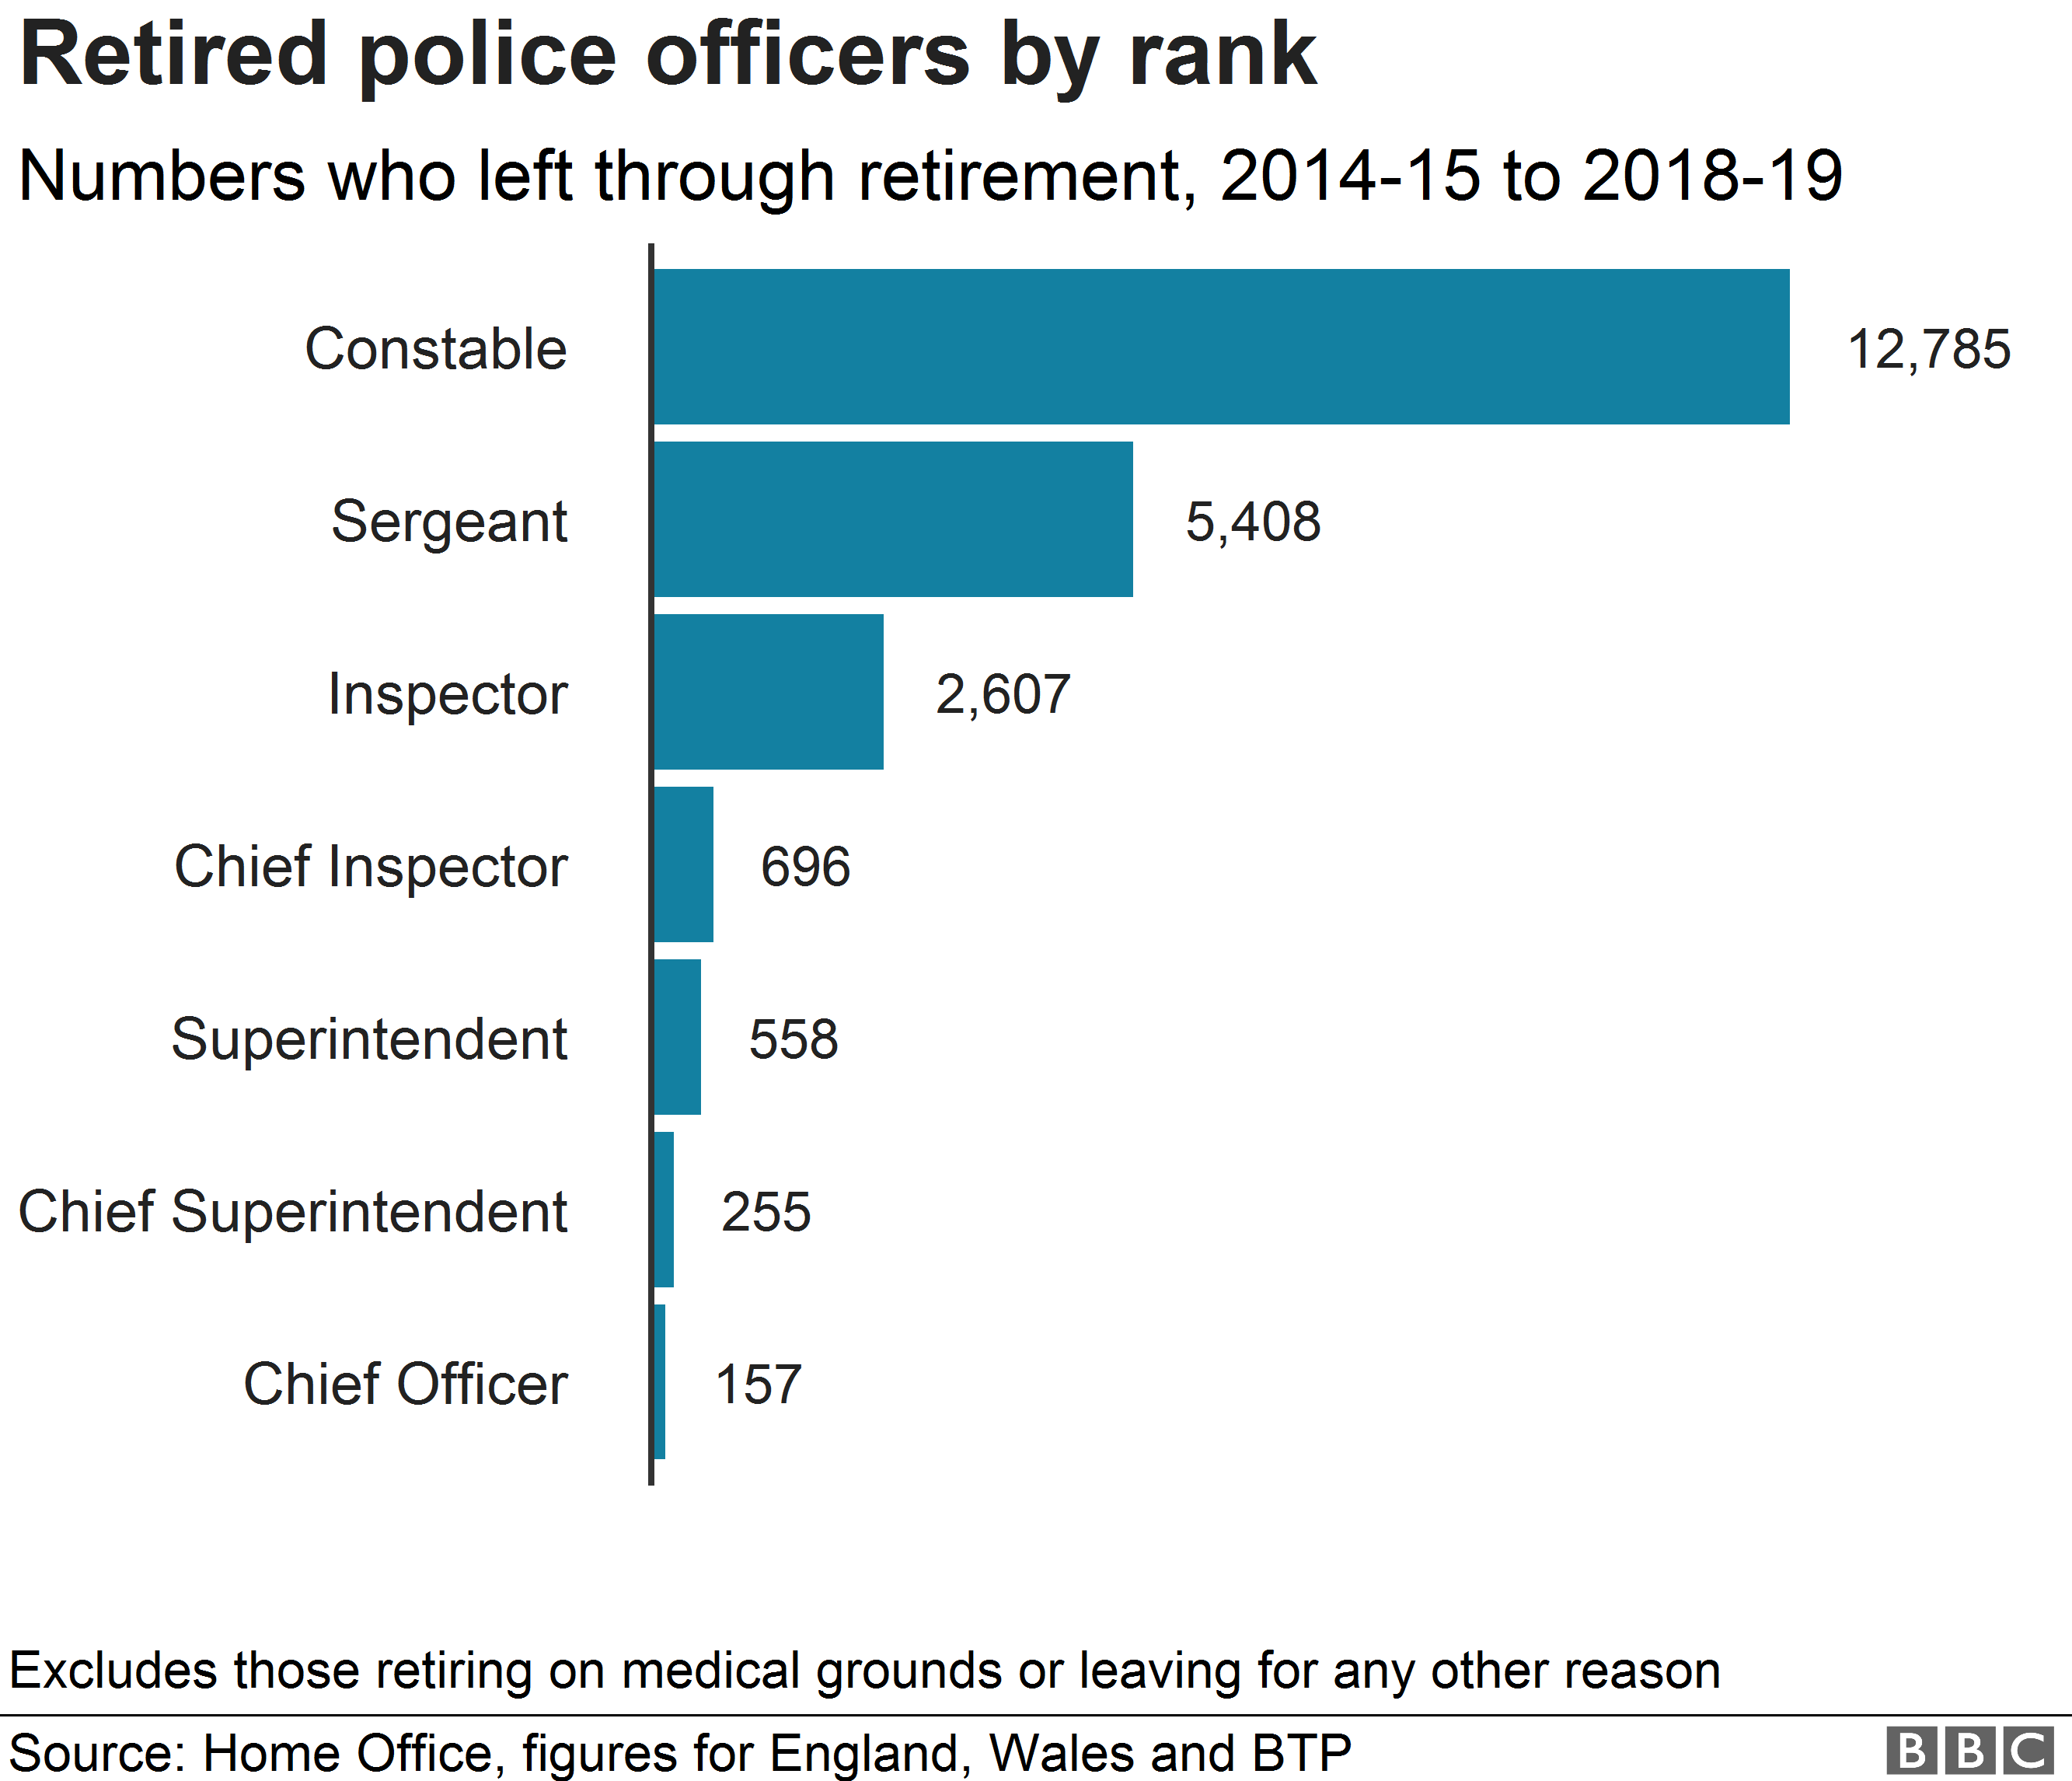 Chart showing ranks of retired officers